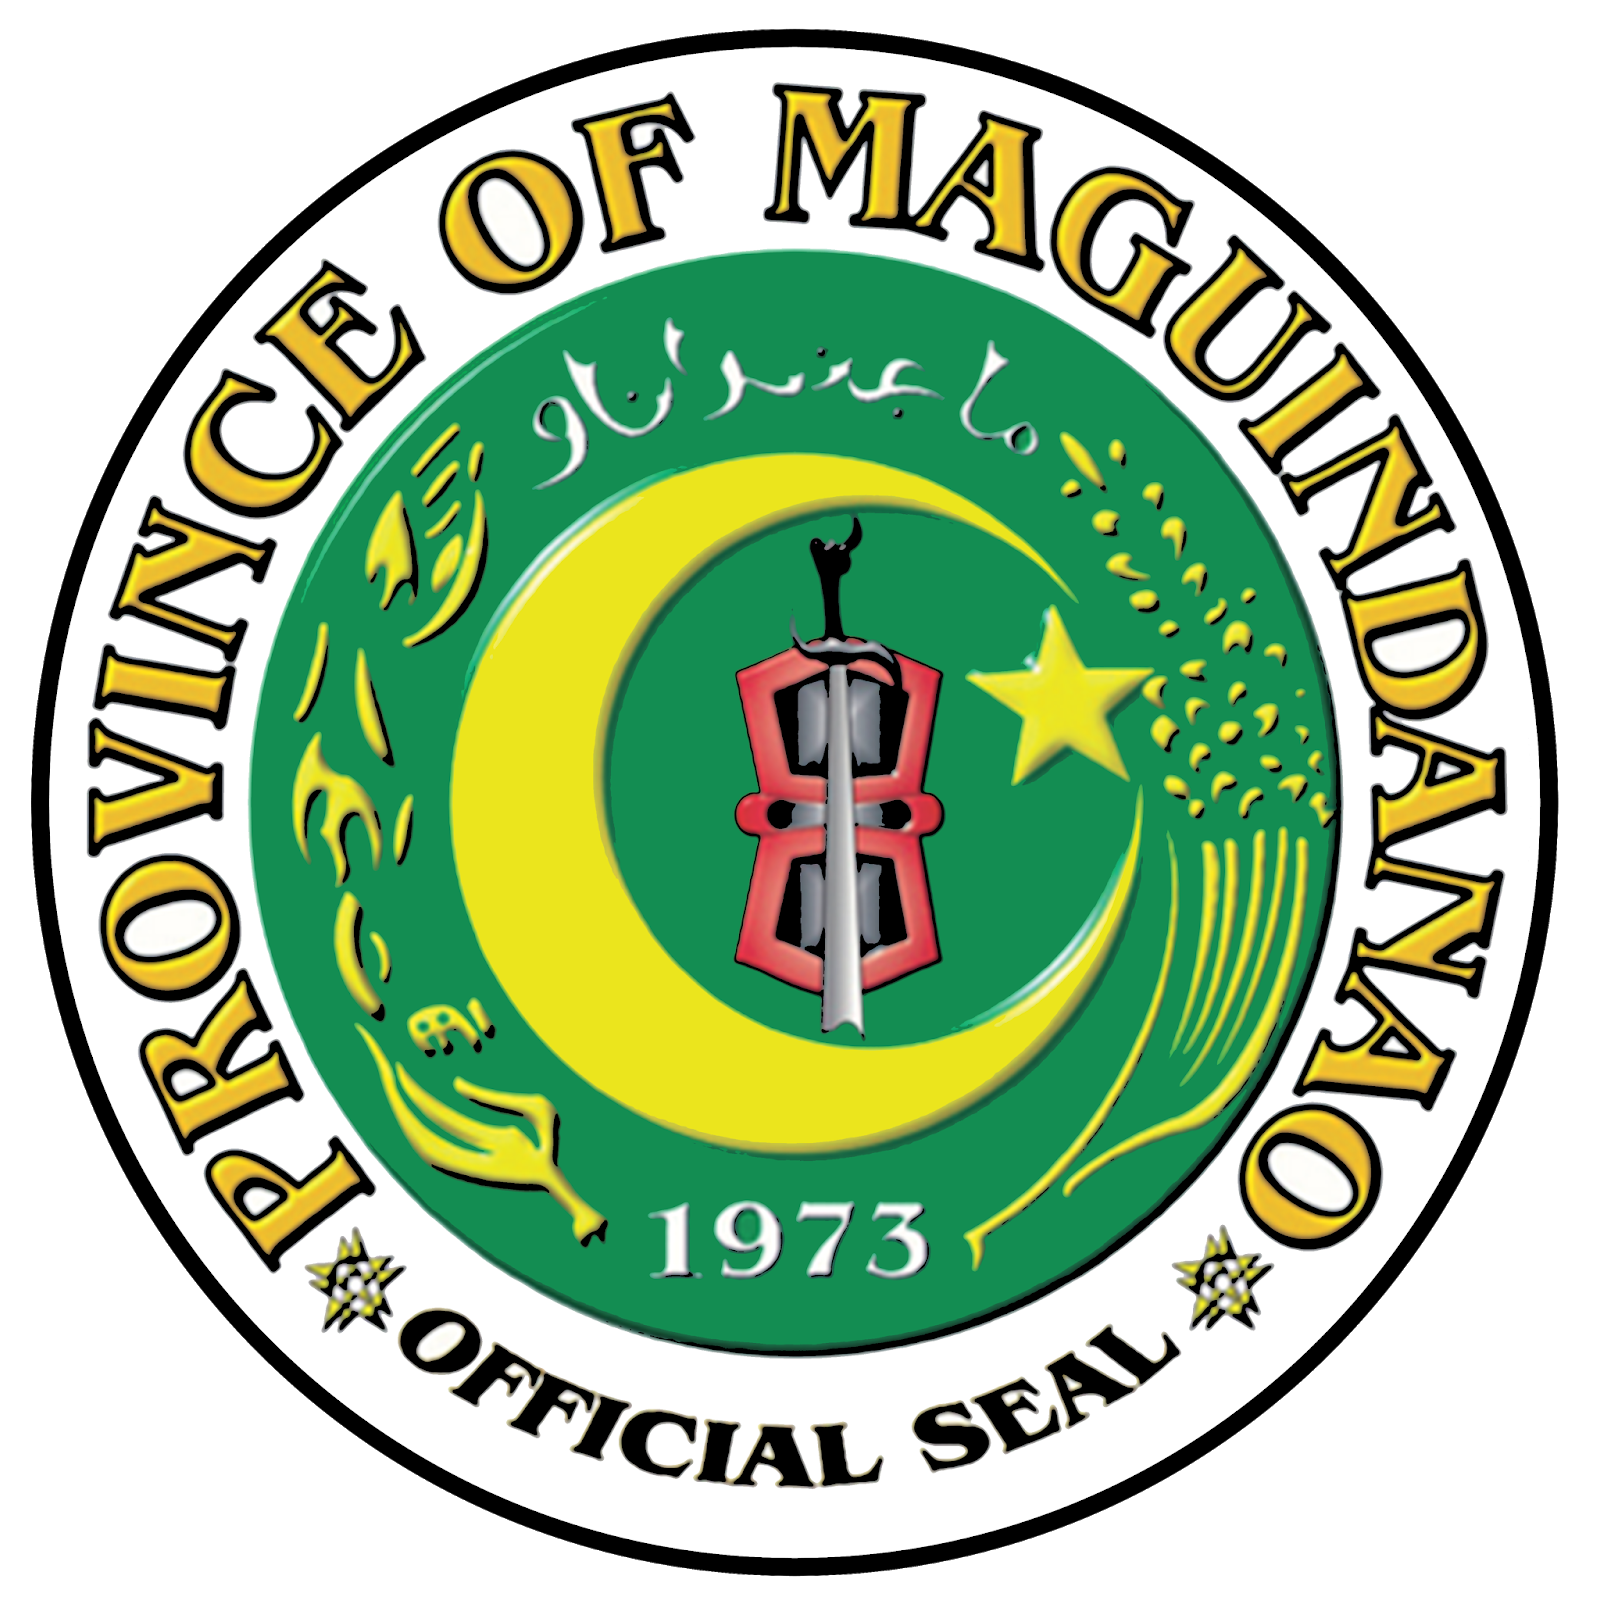 Province of Maguindanao Official Seal